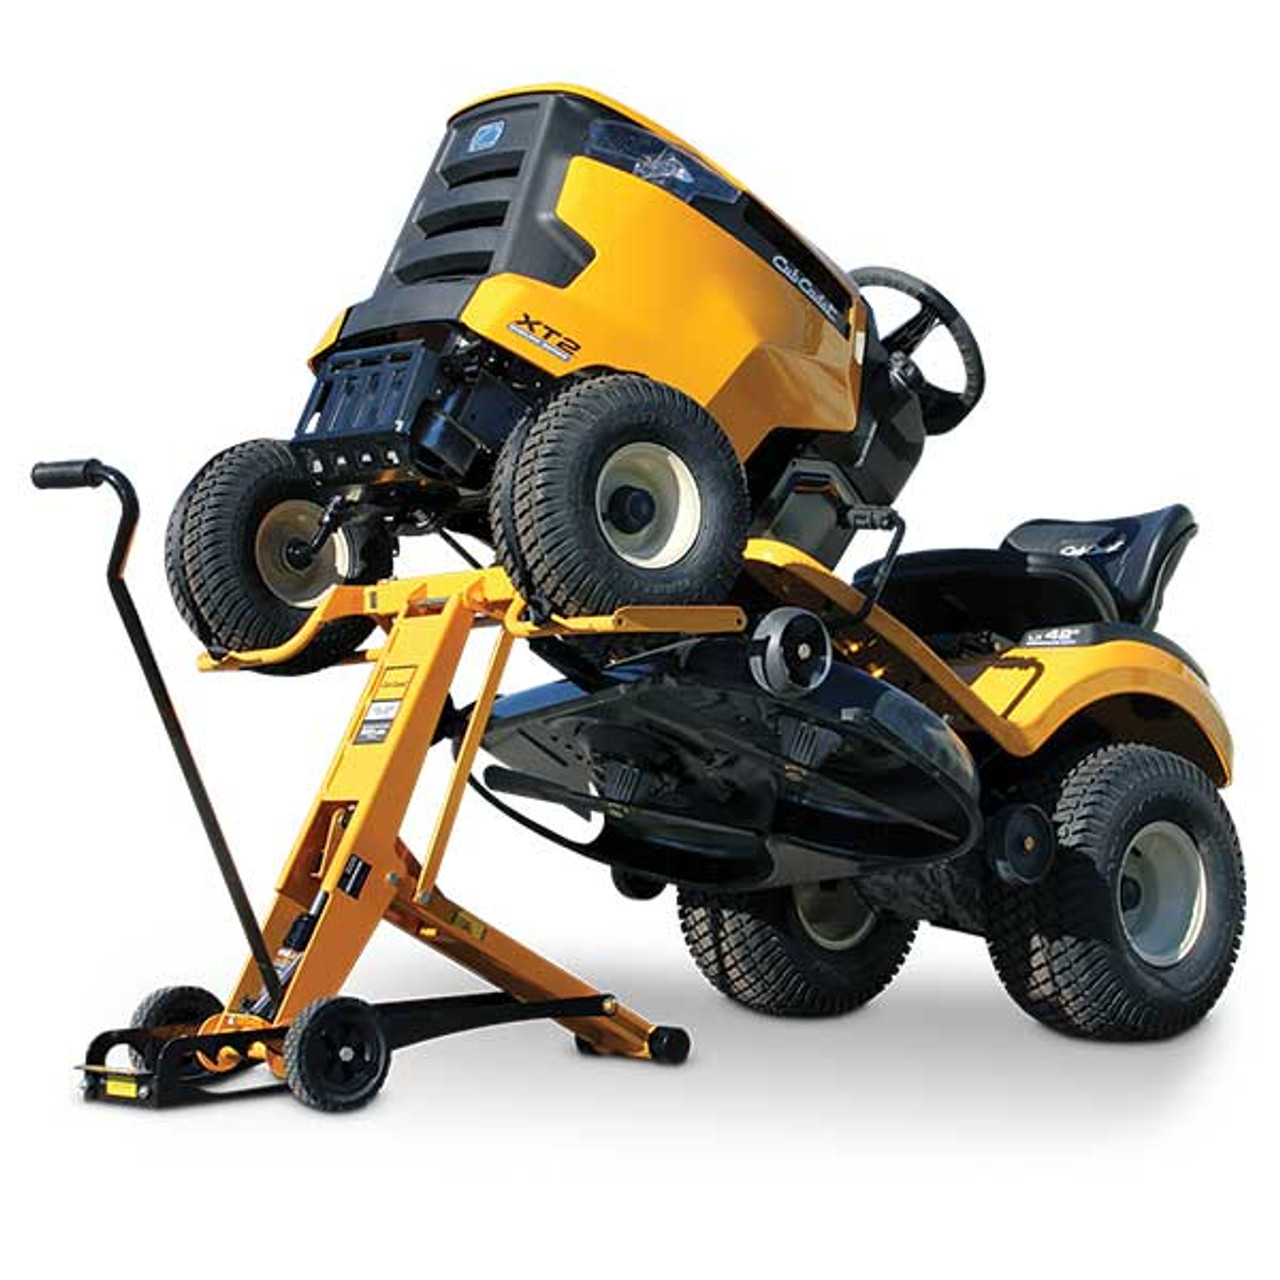 Cub Cadet Chl 500 Mower Lift Holmes Rental Station